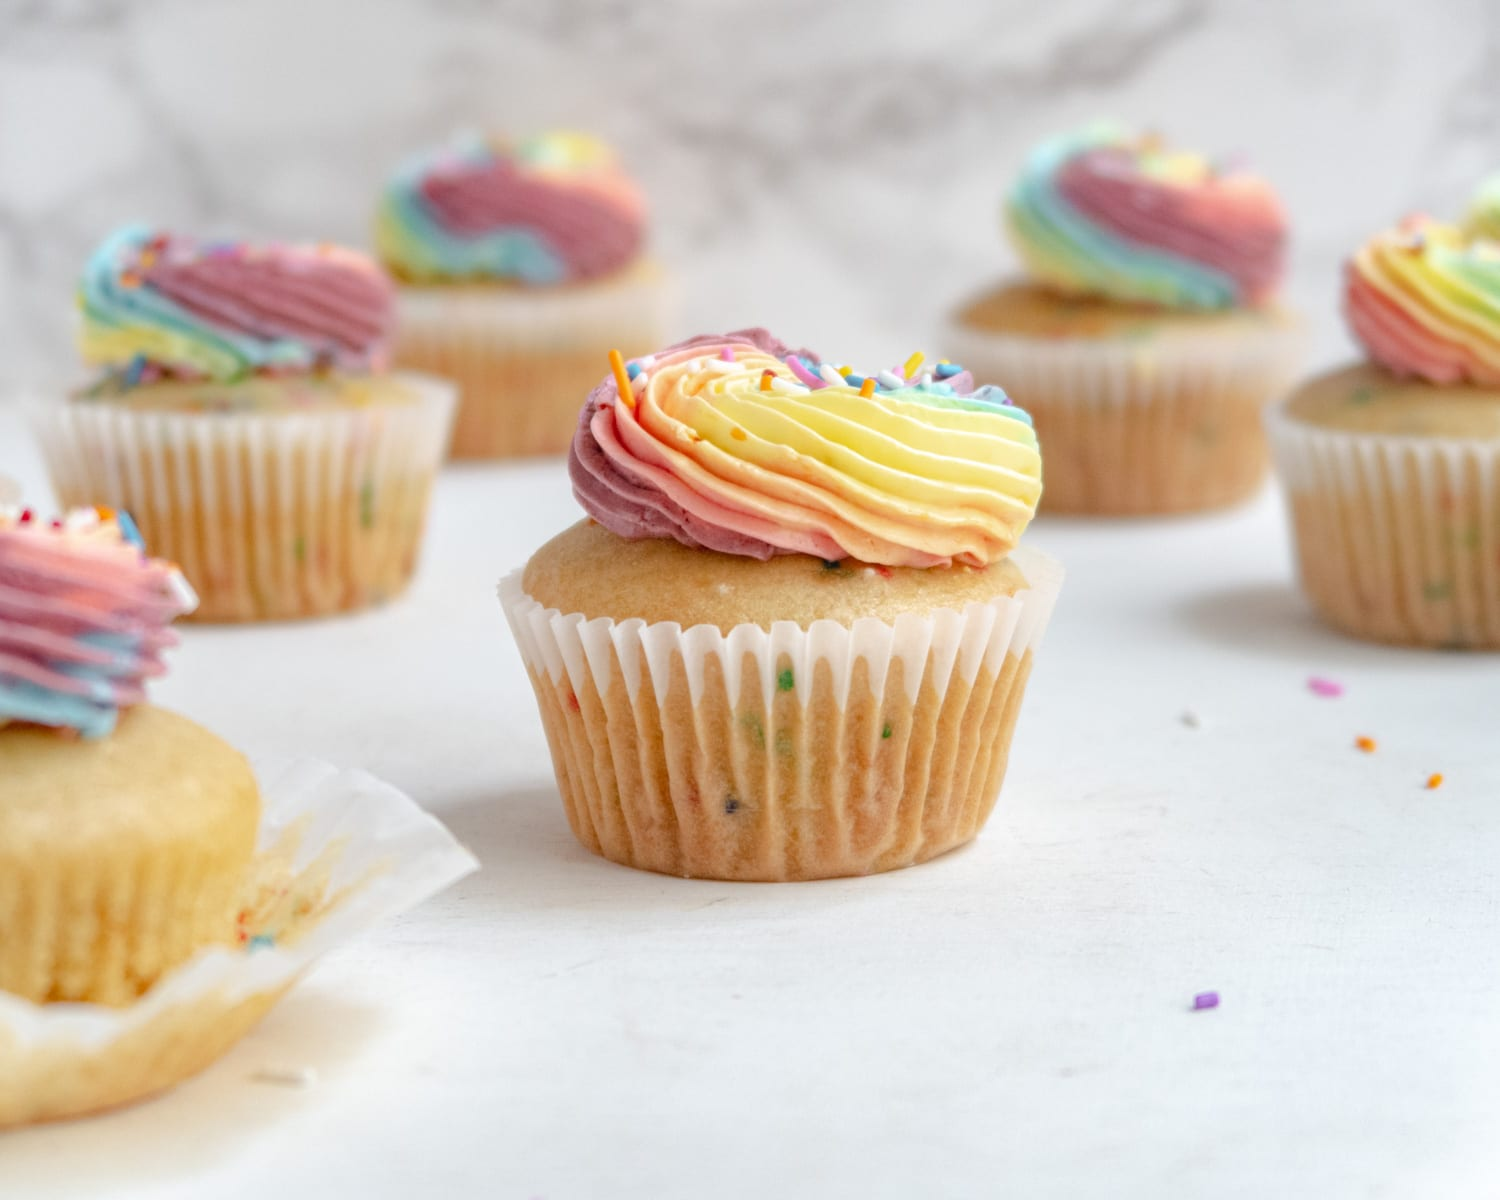 Pride cupcake with blury funfetti cupcakes in the background